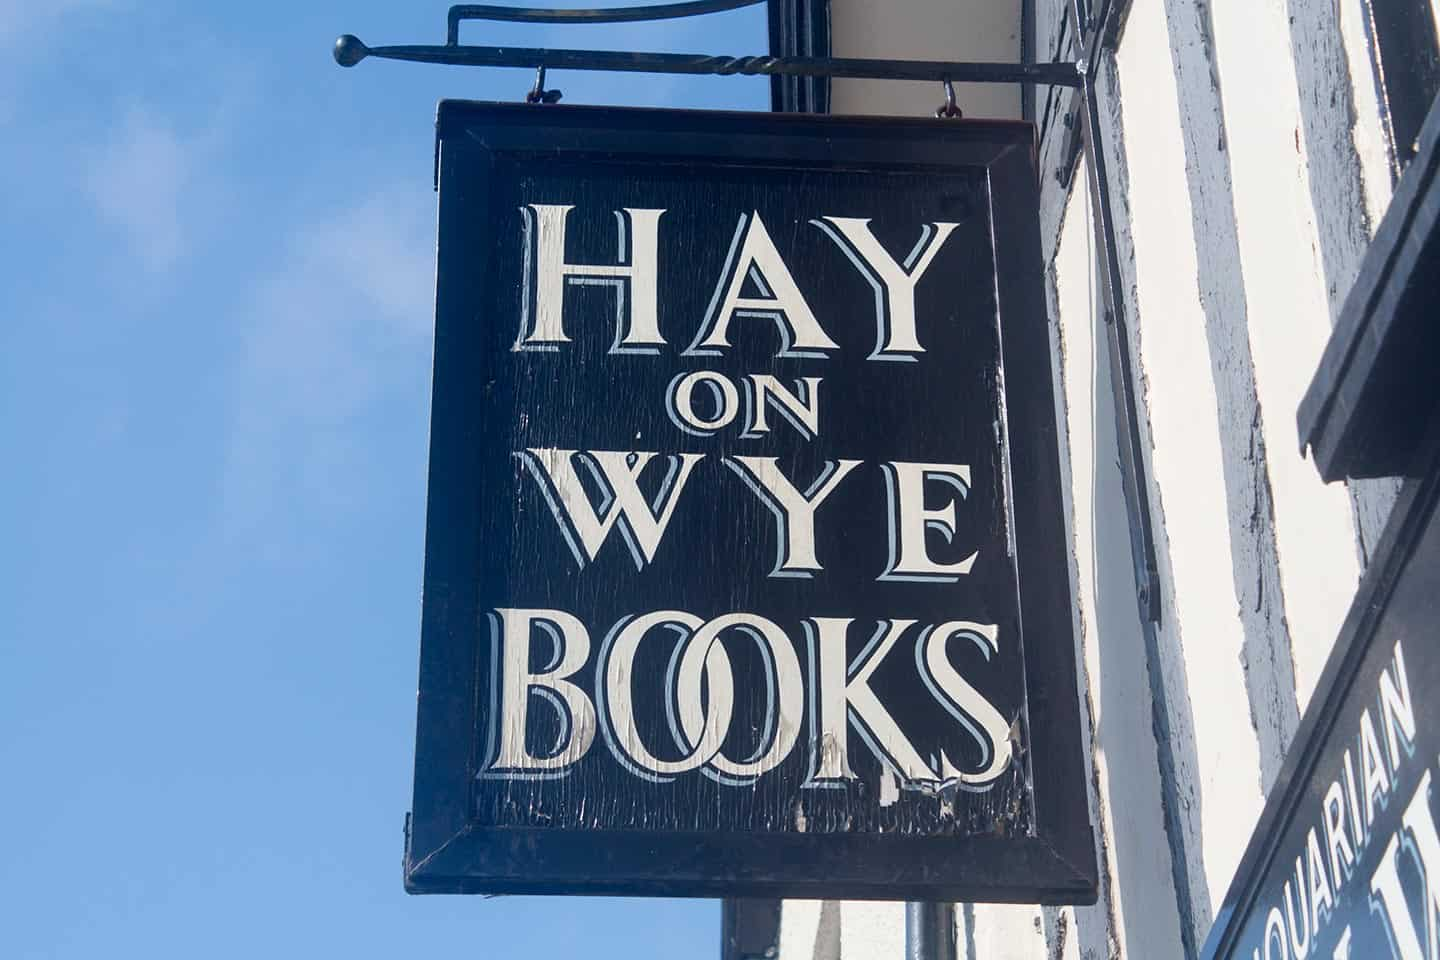 Image of Hay on Wye books sign